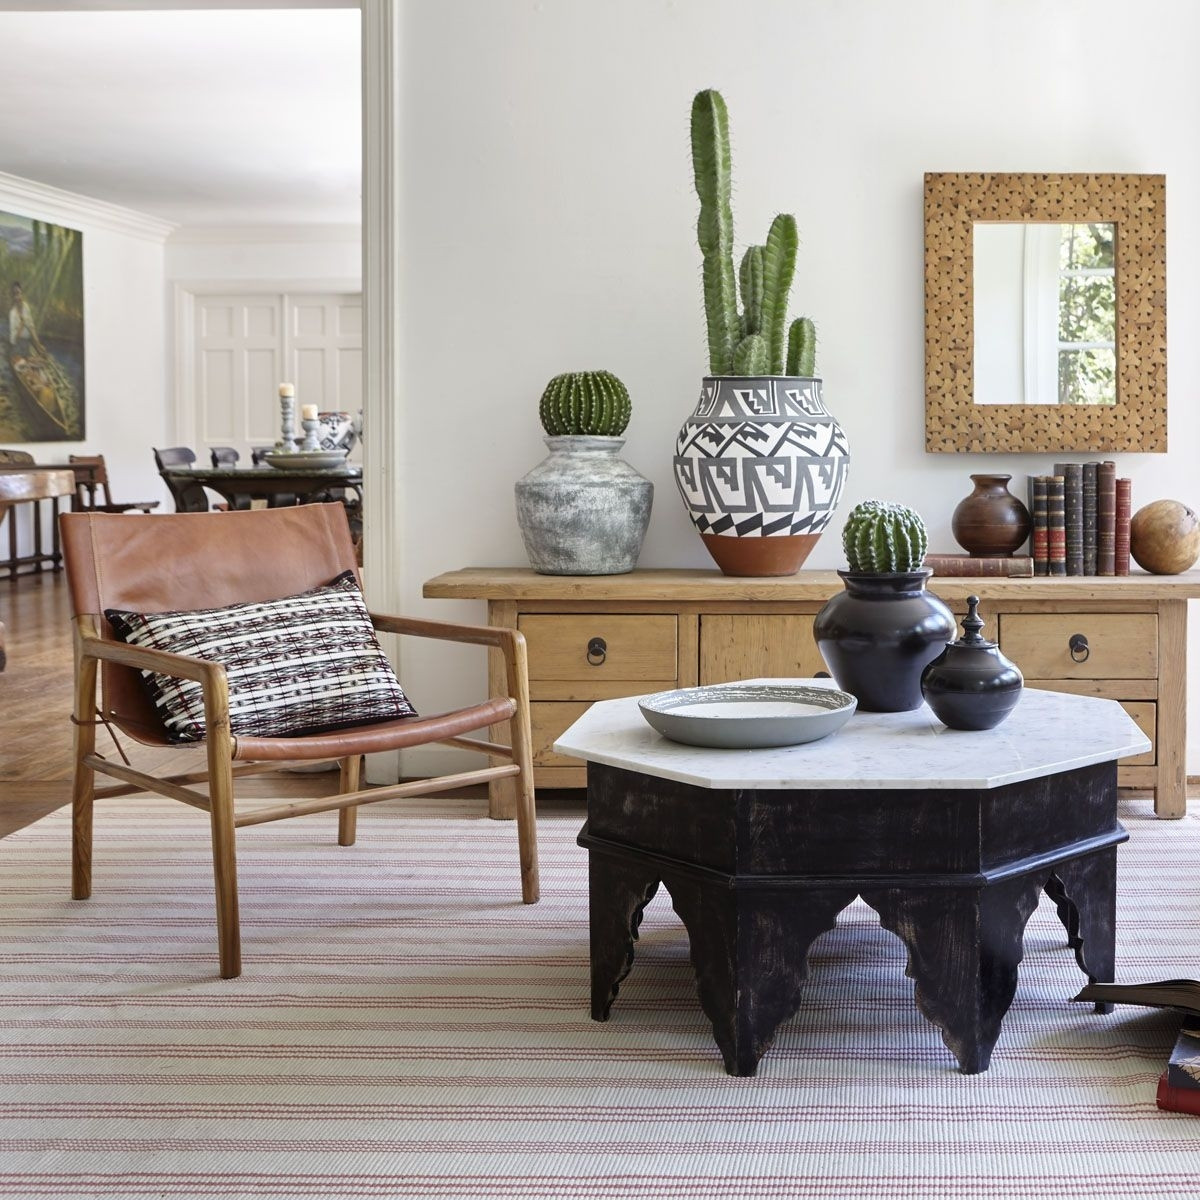 Casablanca Coffee Table | Products | Pinterest | Casablanca And Products Within Casablanca Coffee Tables (View 18 of 30)